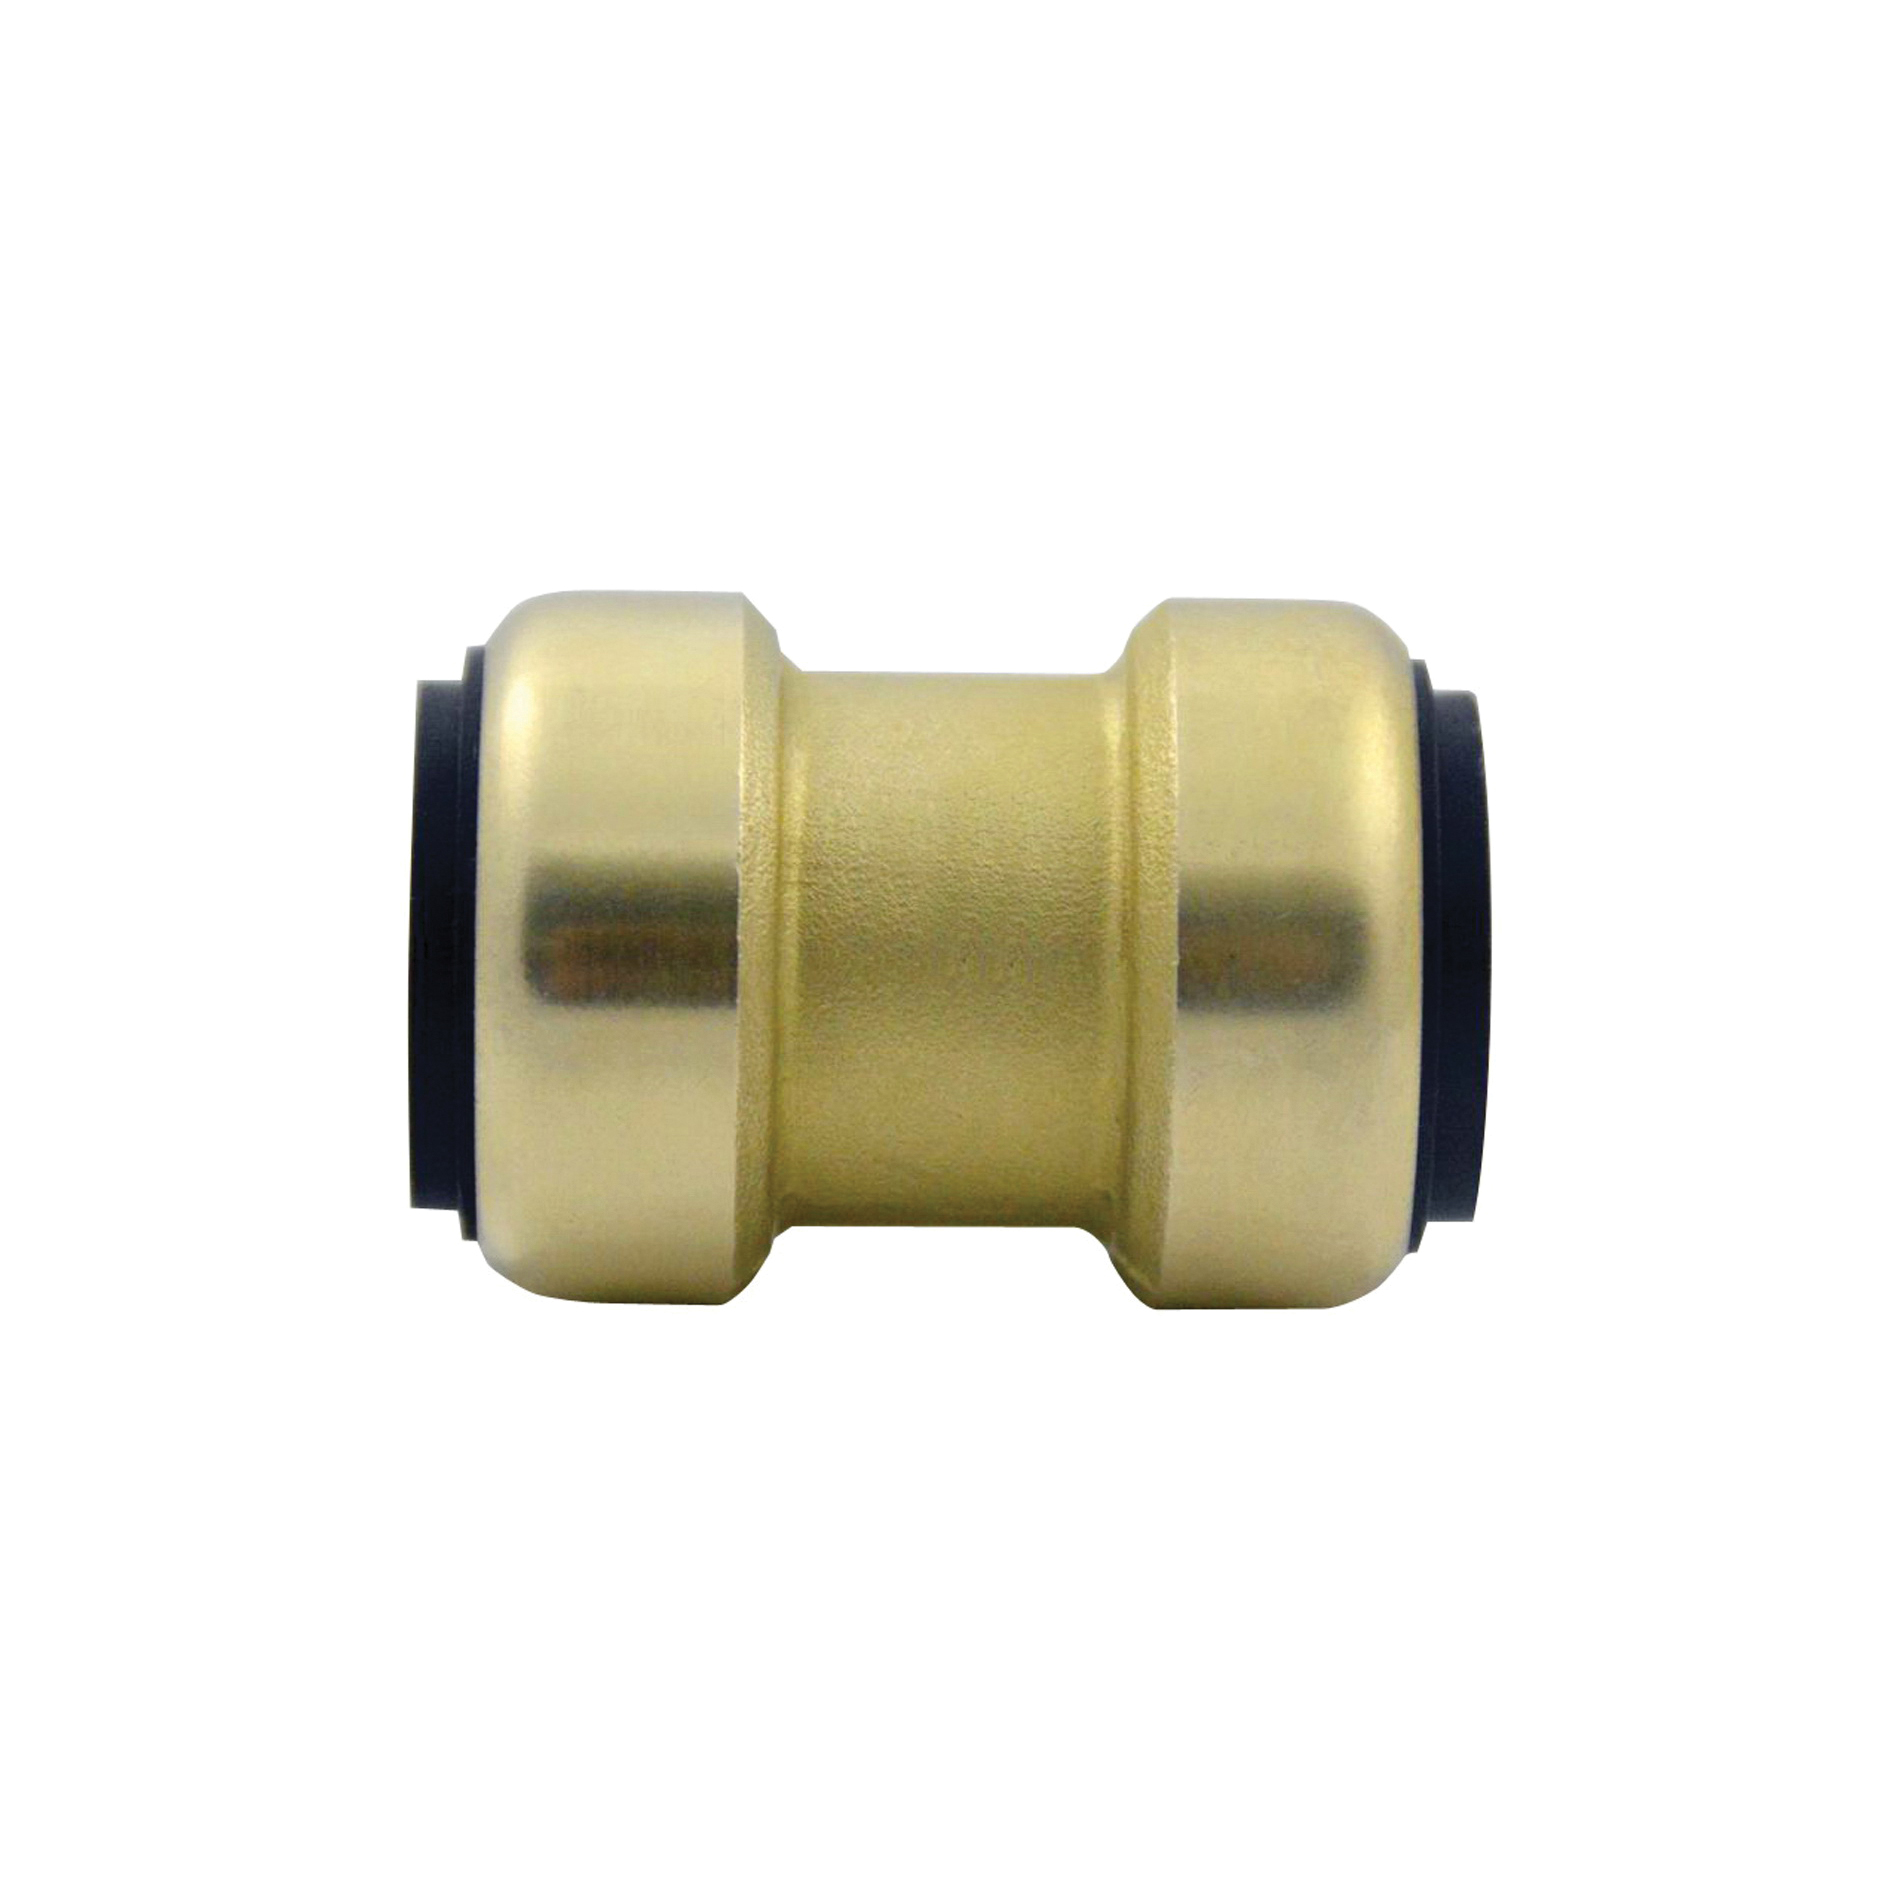 EPC TECTITE™ 200 Push Lead Free Coupling With Stop, 1 in, C x C, Brass